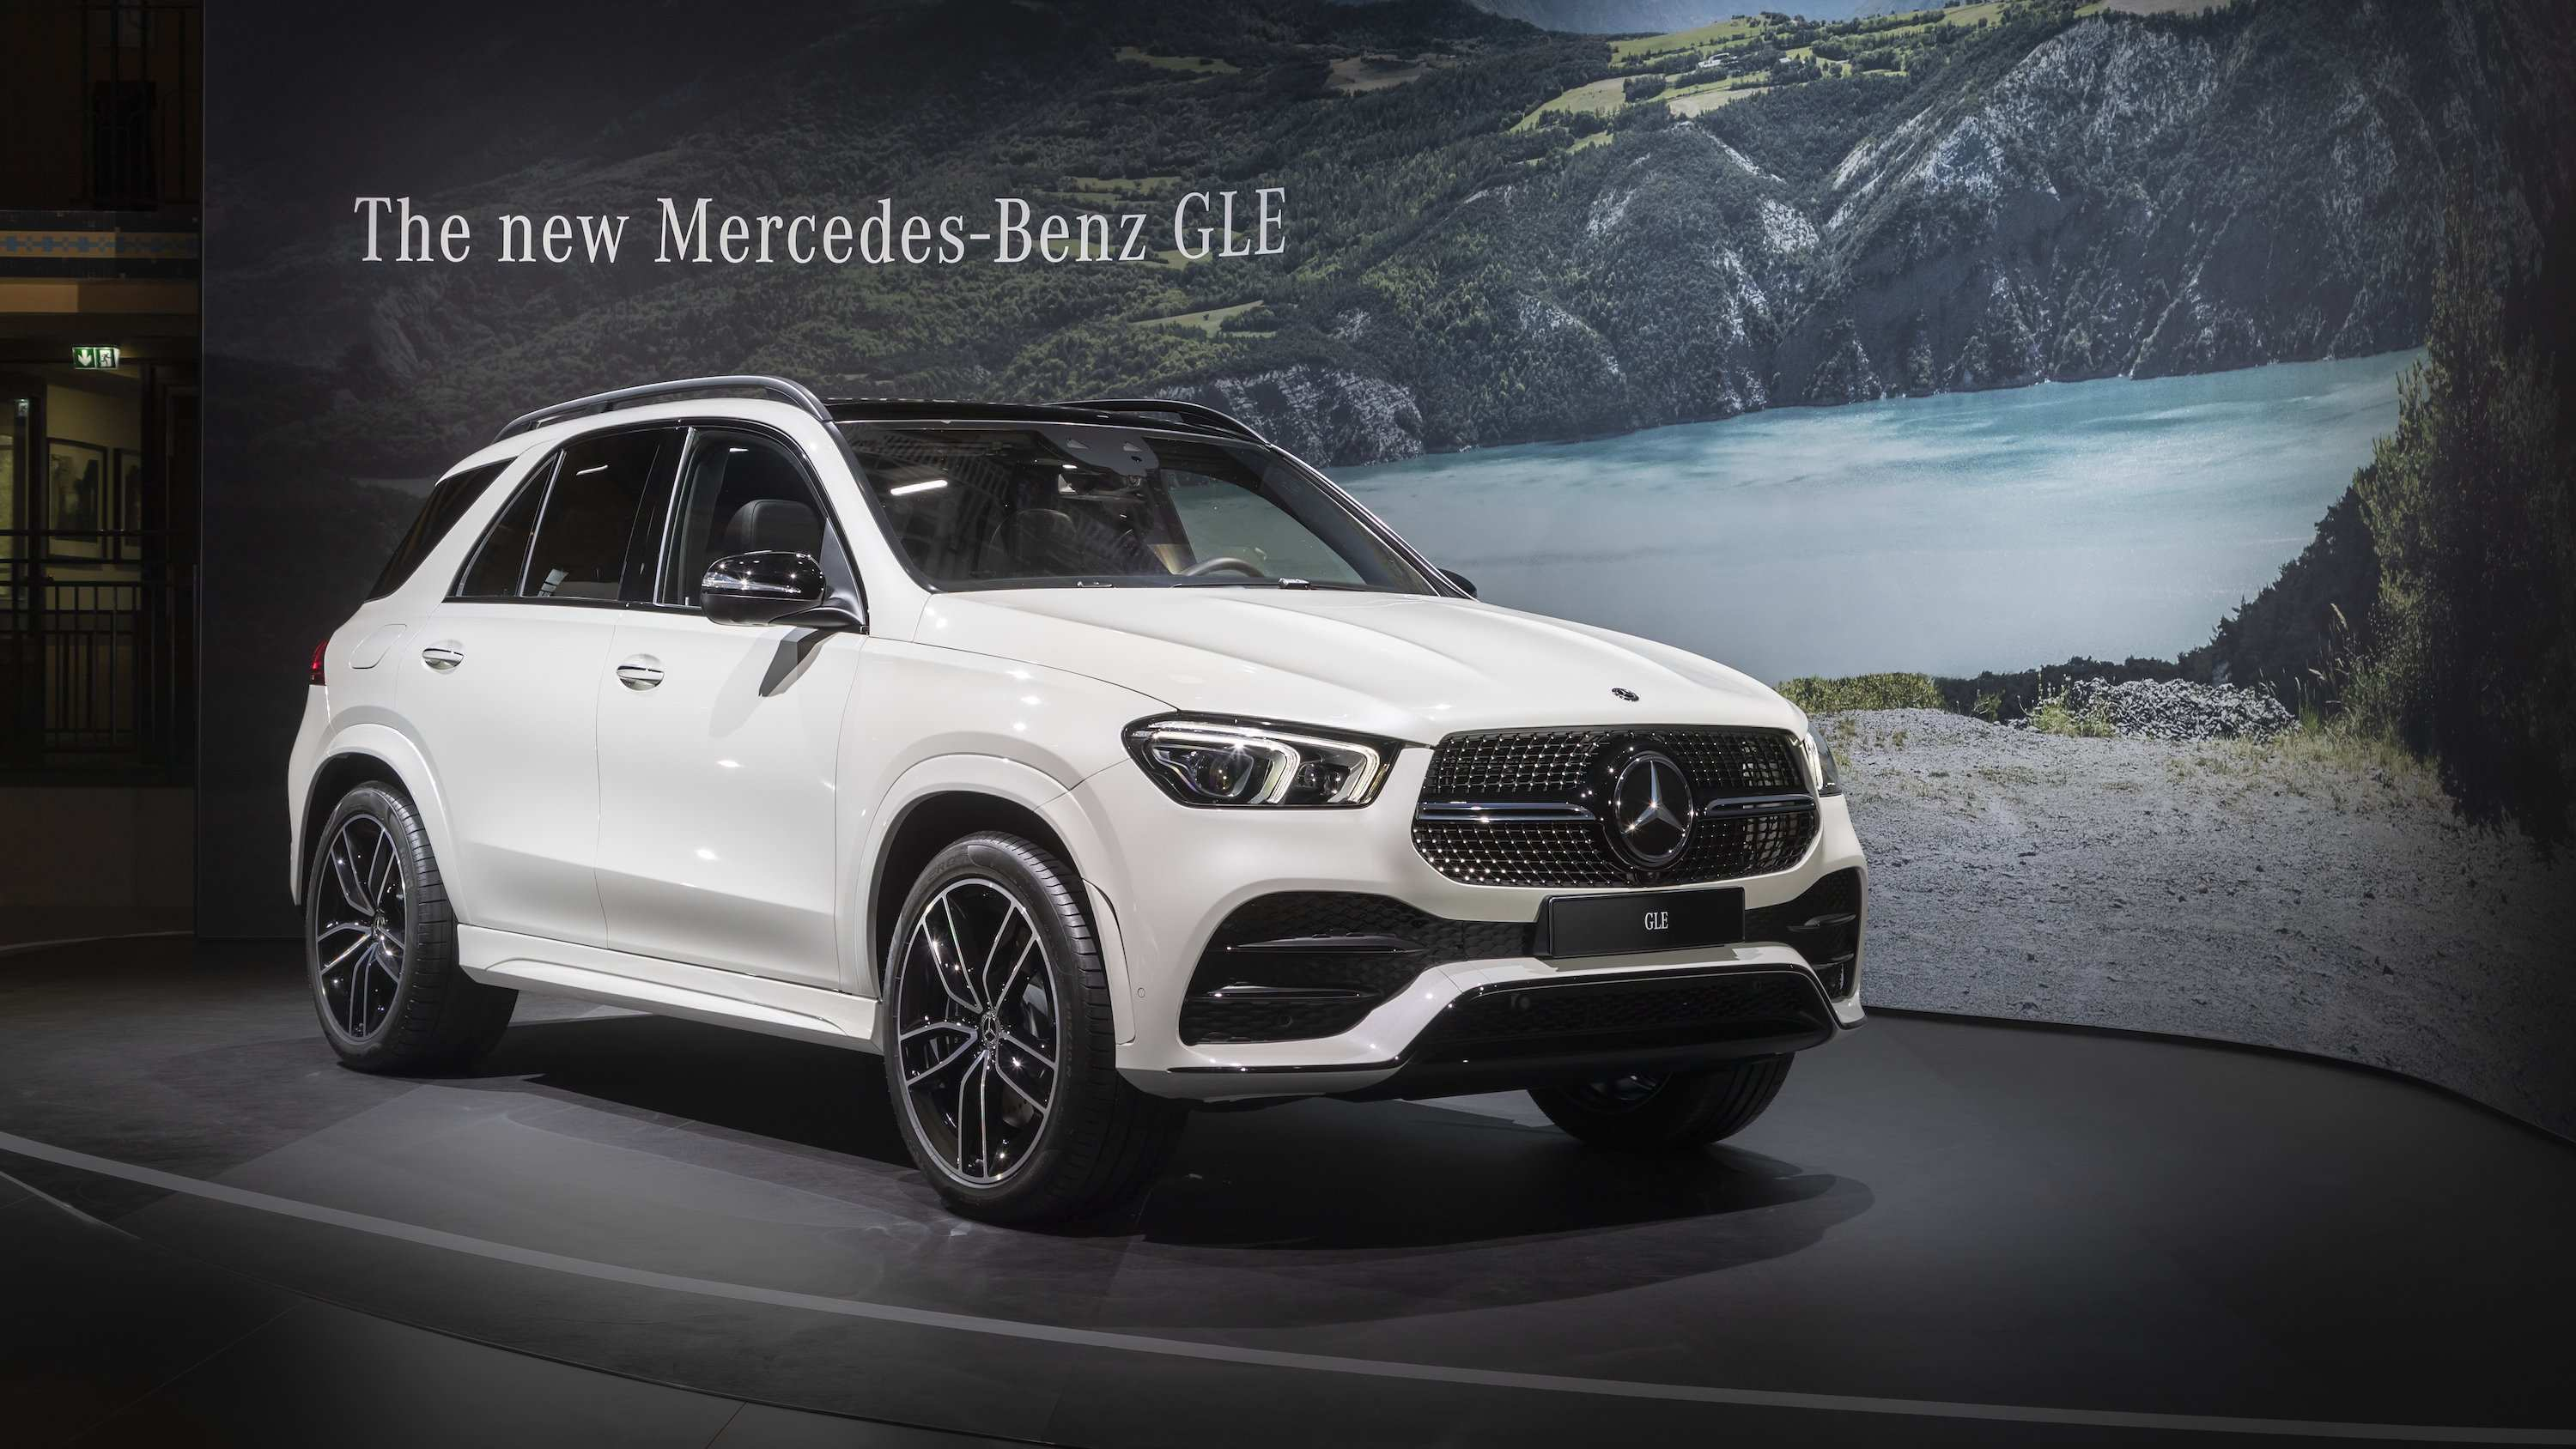 21 All New Mercedes Gle 2020 Youtube Pricing by Mercedes Gle 2020 Youtube